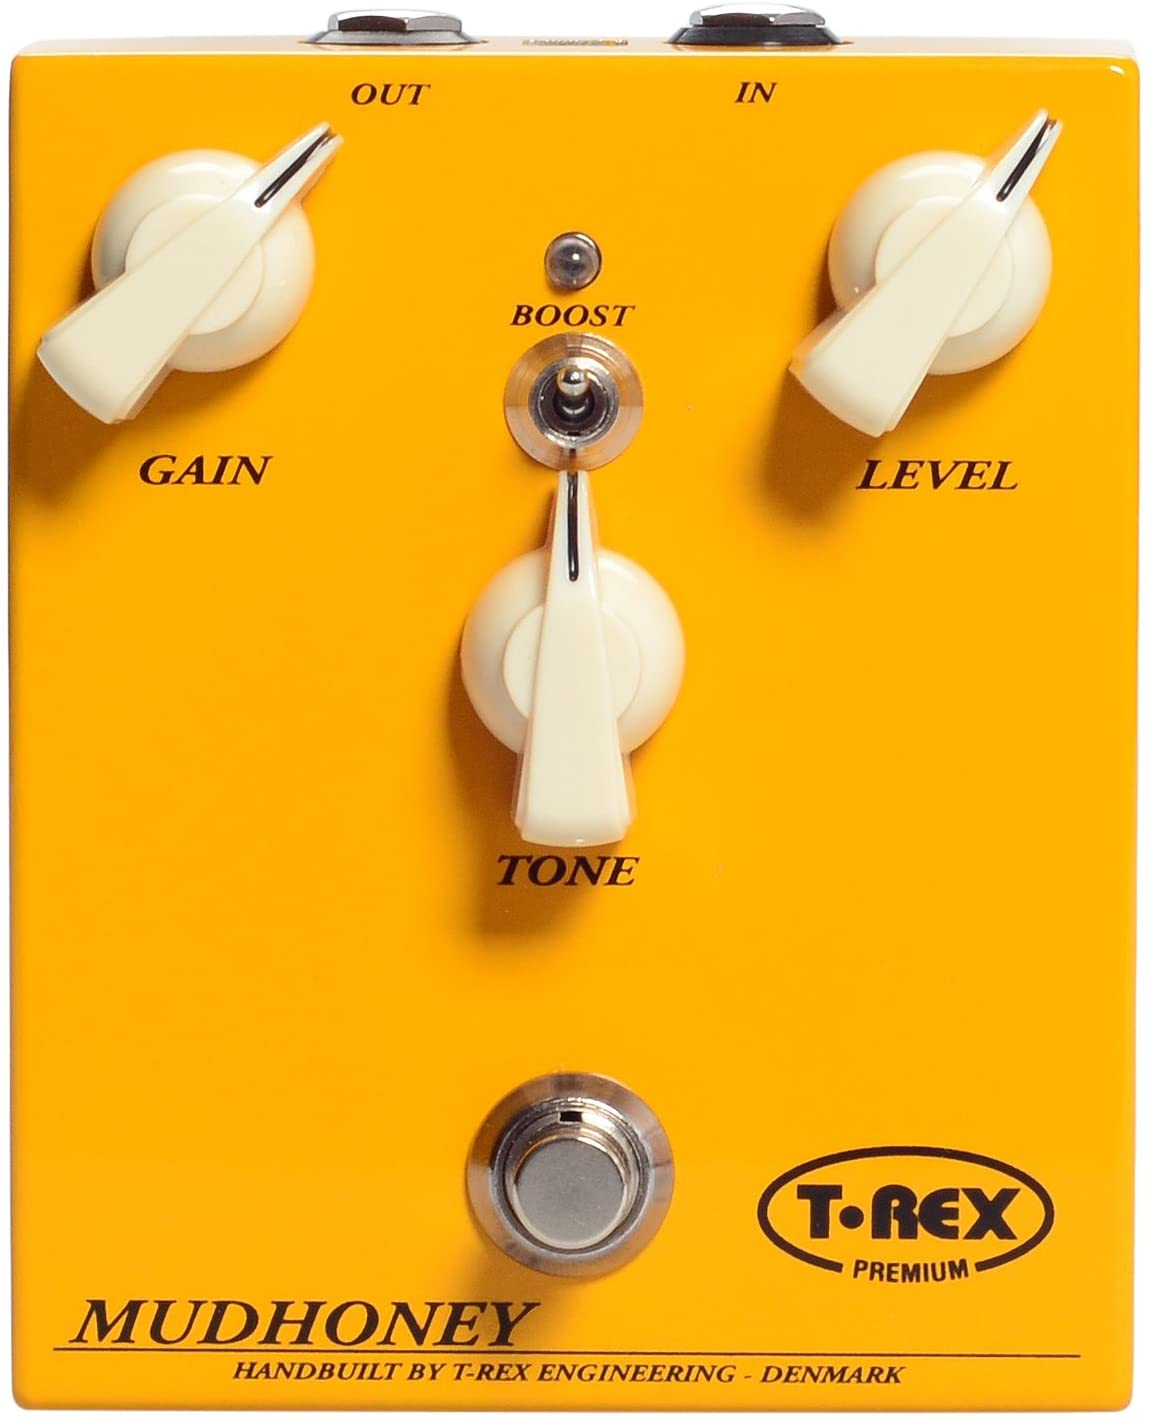 T-Rex Engineering MUDHONEY-CLASSIC Distortion Guitar Effects Pedal Hand Wired in Denmark, Classic Crunchy, Fuzzy Distortion with Gain, Level and Tone Adjustability (10040)